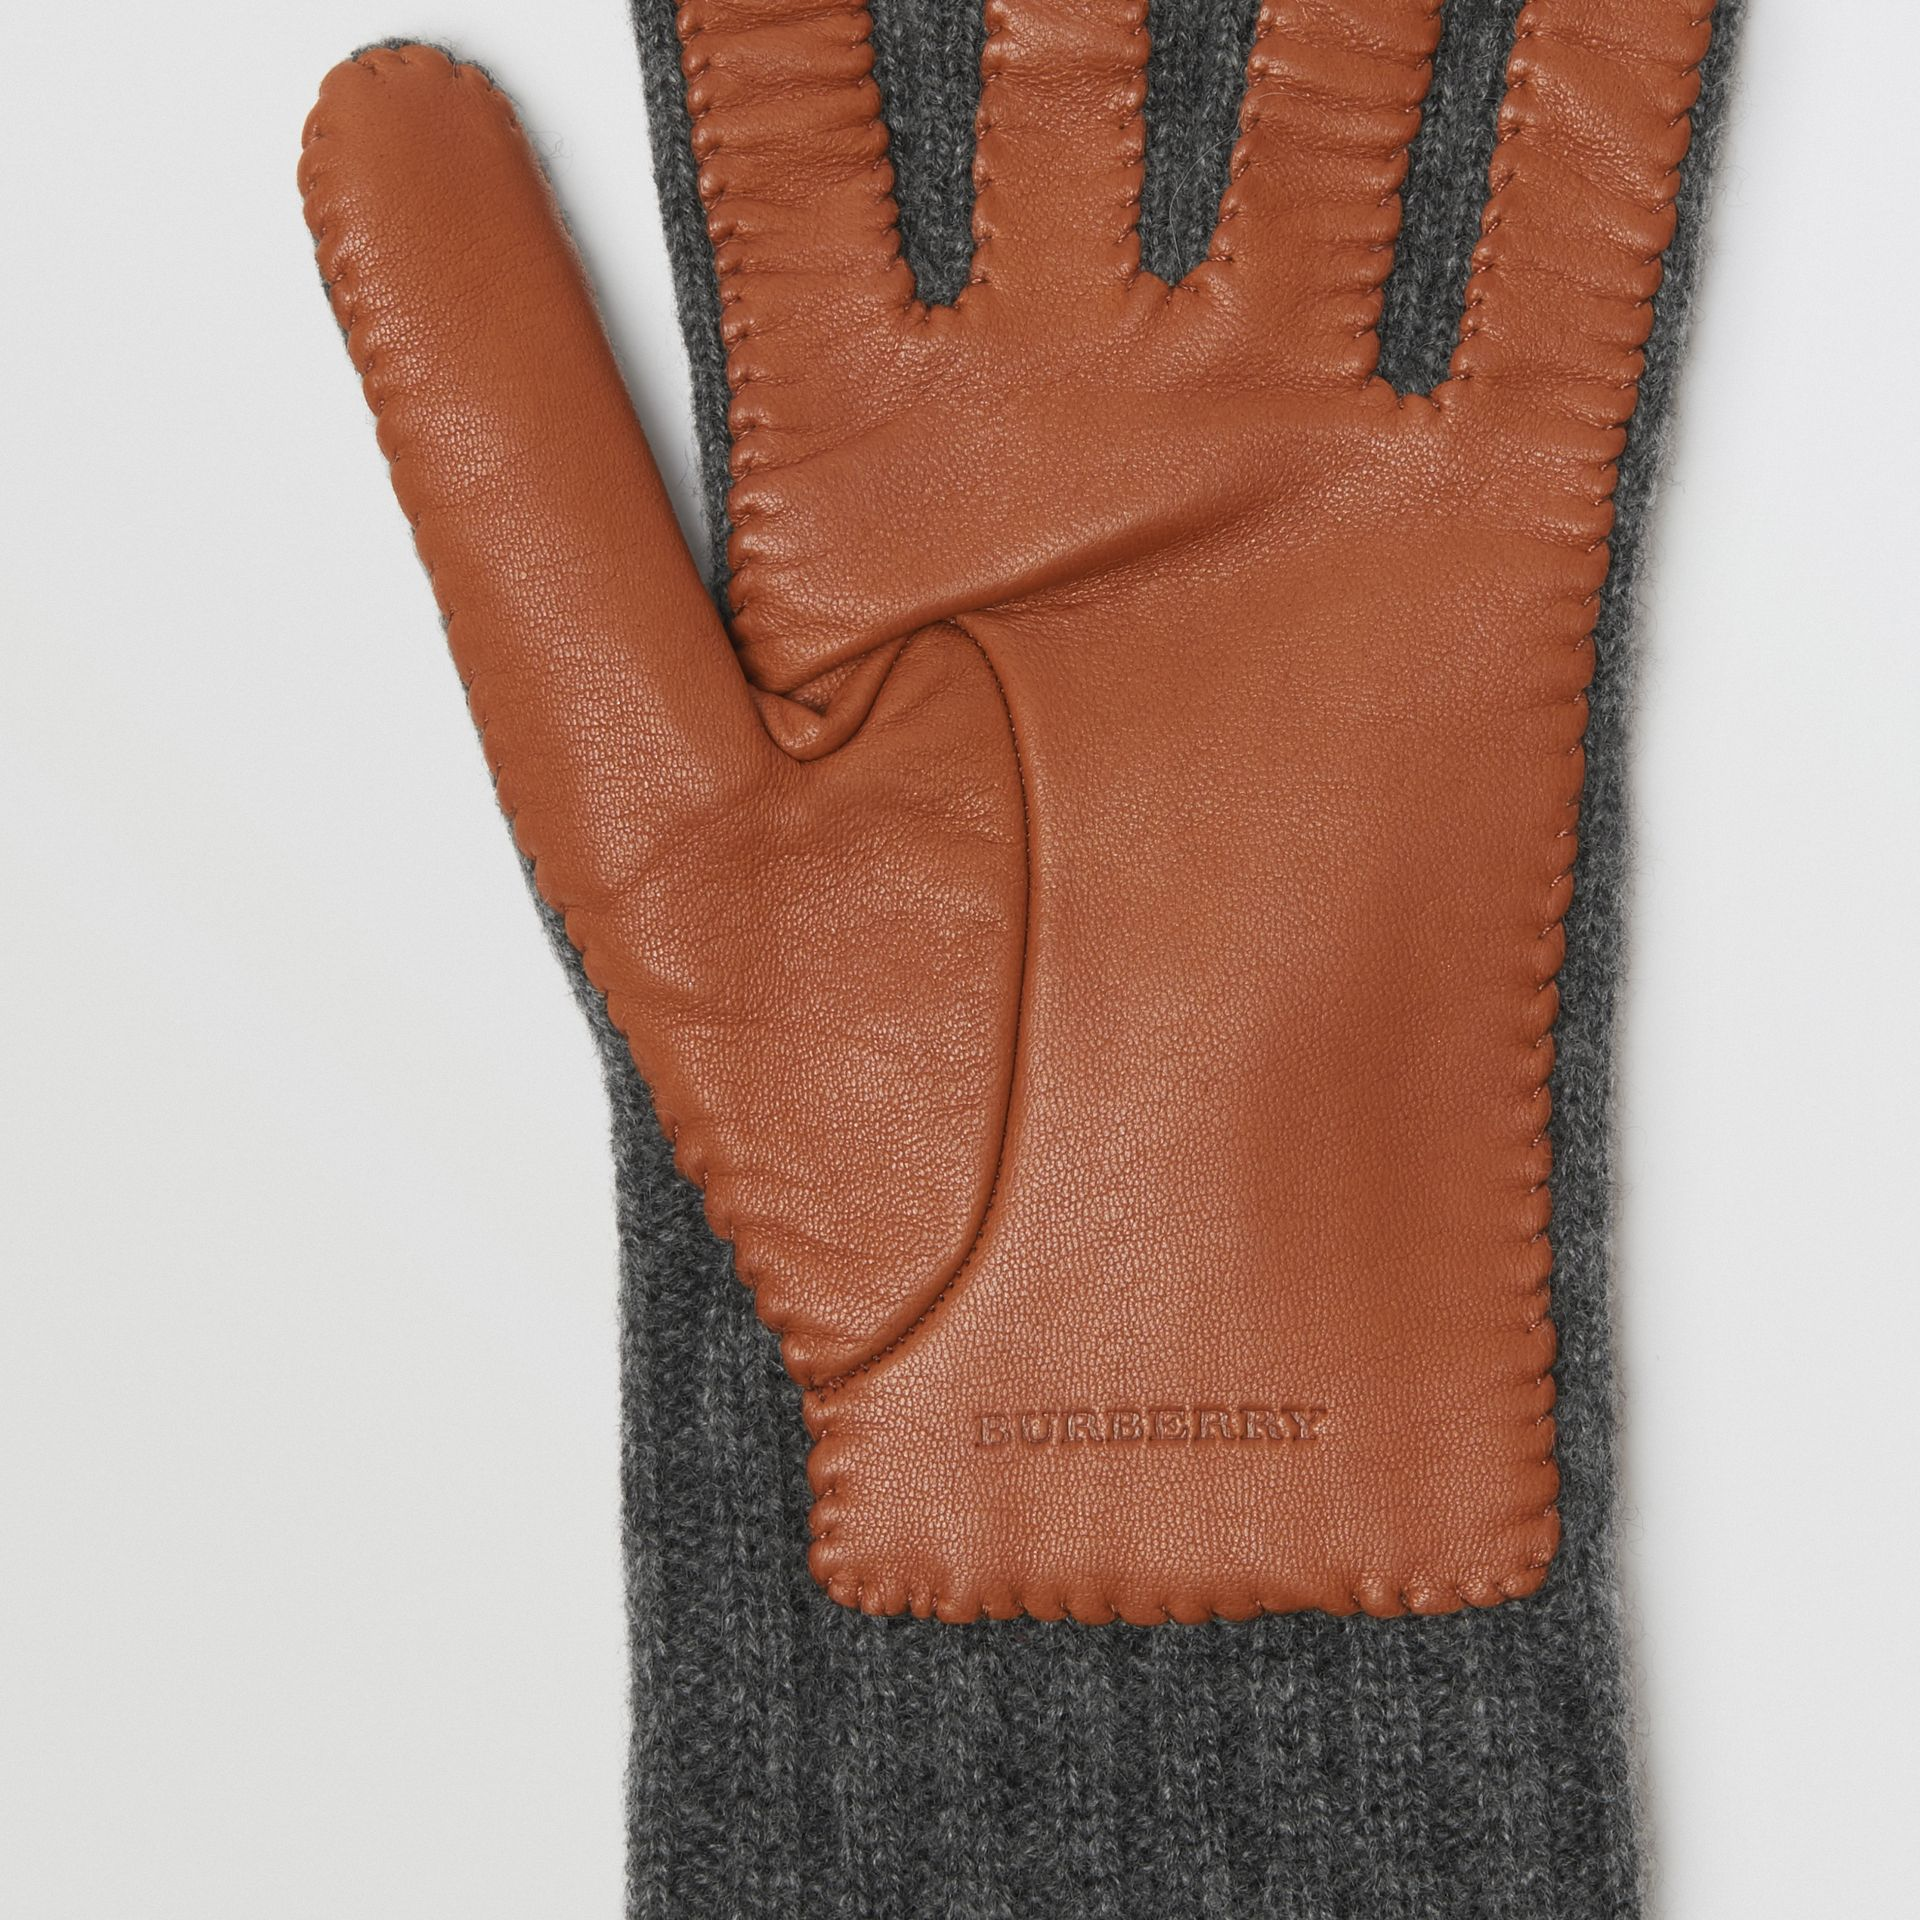 Cashmere and Lambskin Gloves in Tan/charcoal - Women | Burberry United Kingdom - gallery image 1